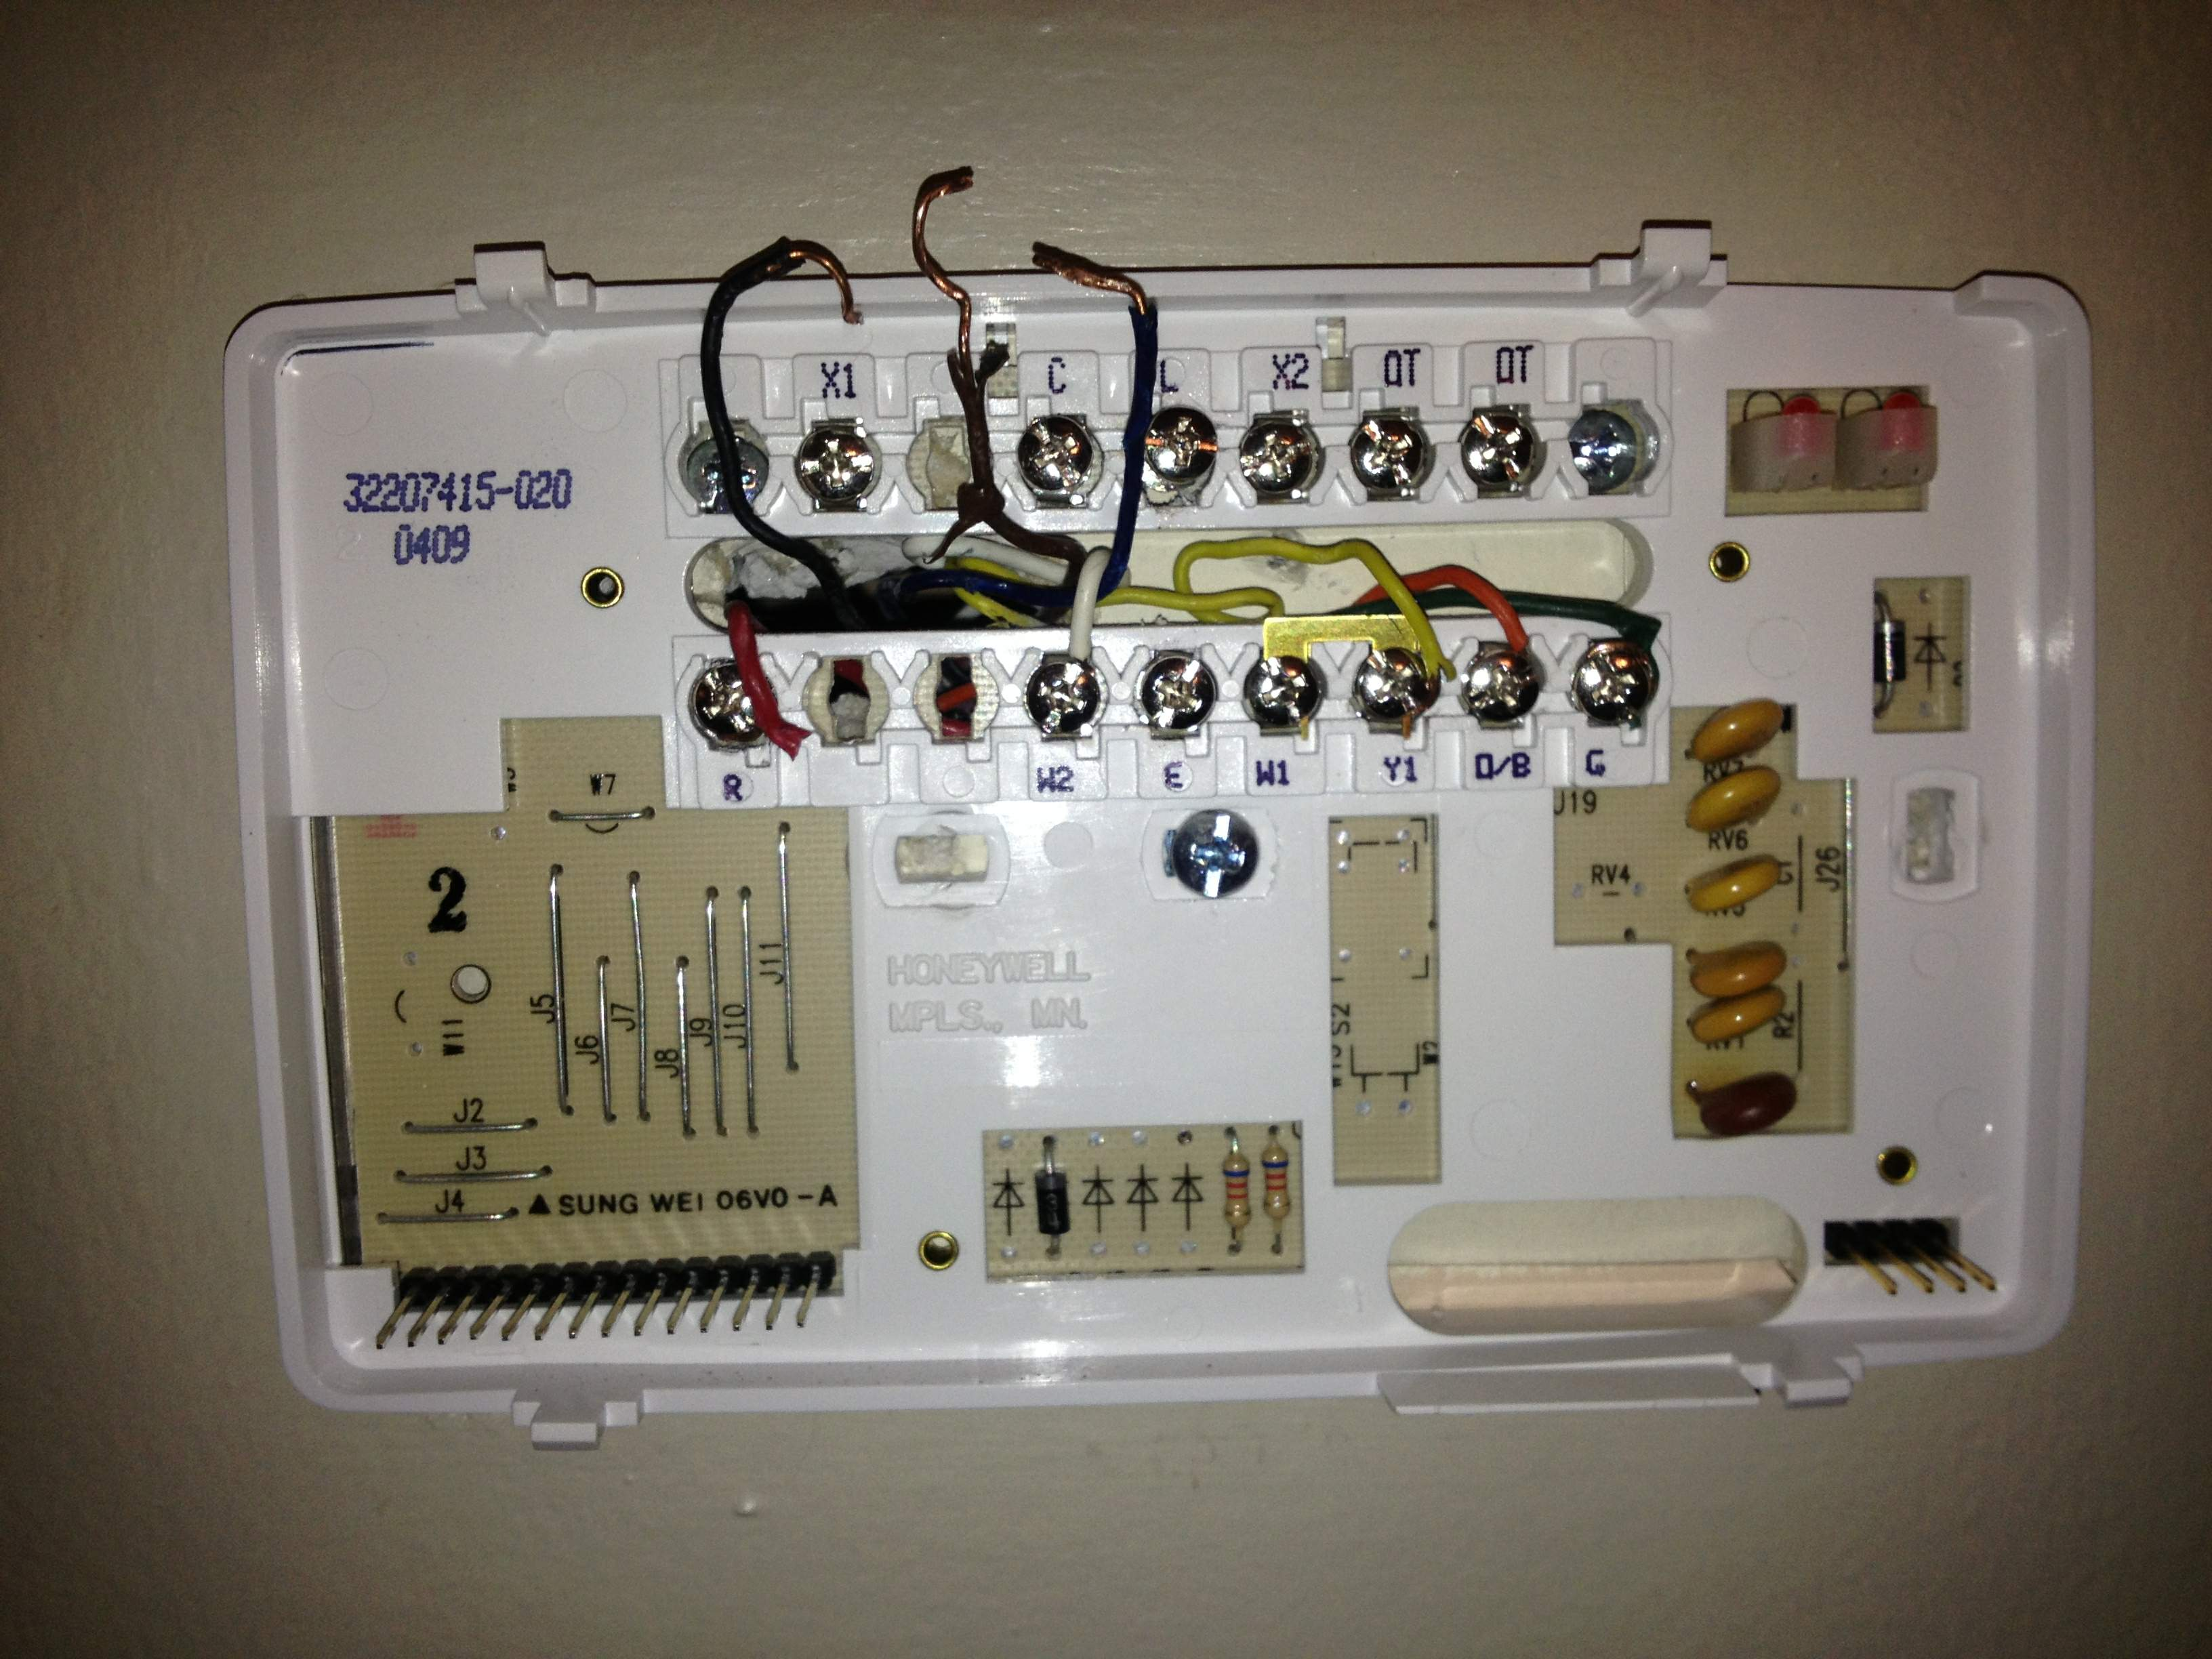 I Am Trying To Wire A Honeywell T8611g2028 Thermostat To A